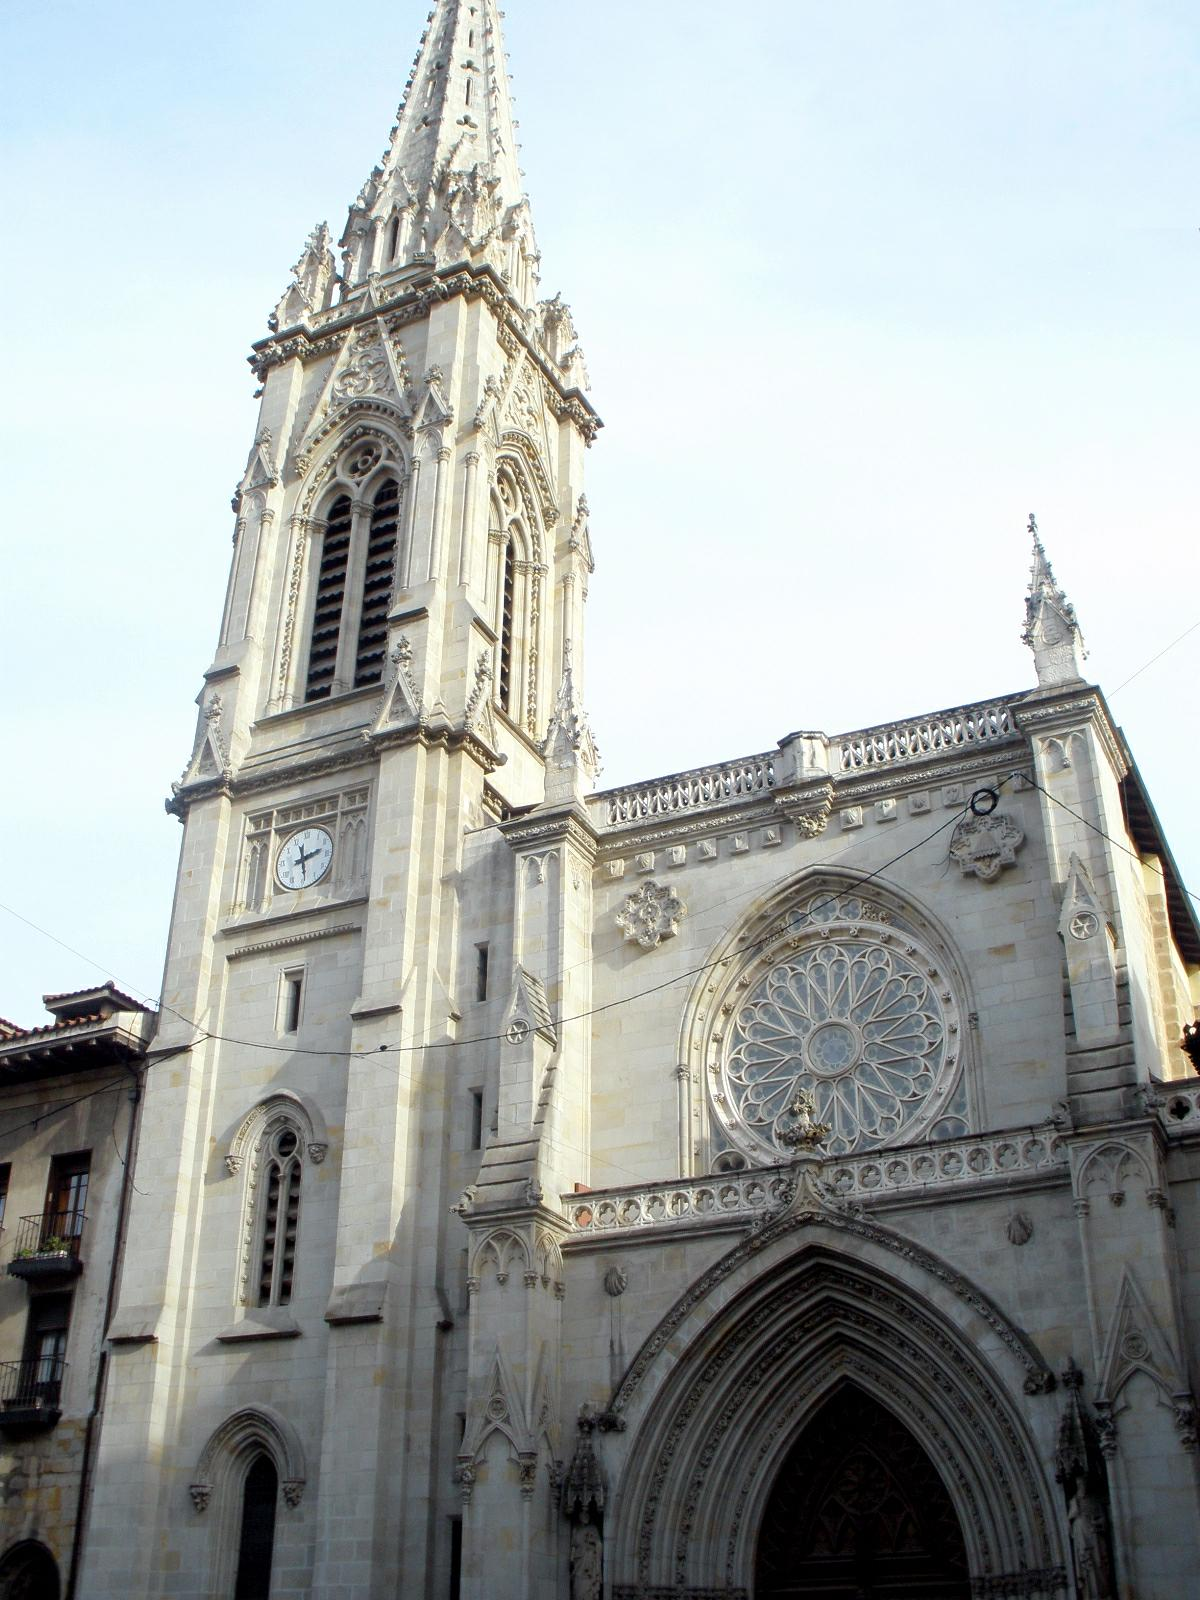 http://upload.wikimedia.org/wikipedia/commons/9/96/Bilbao_-_Catedral_de_Santiago_51.JPG